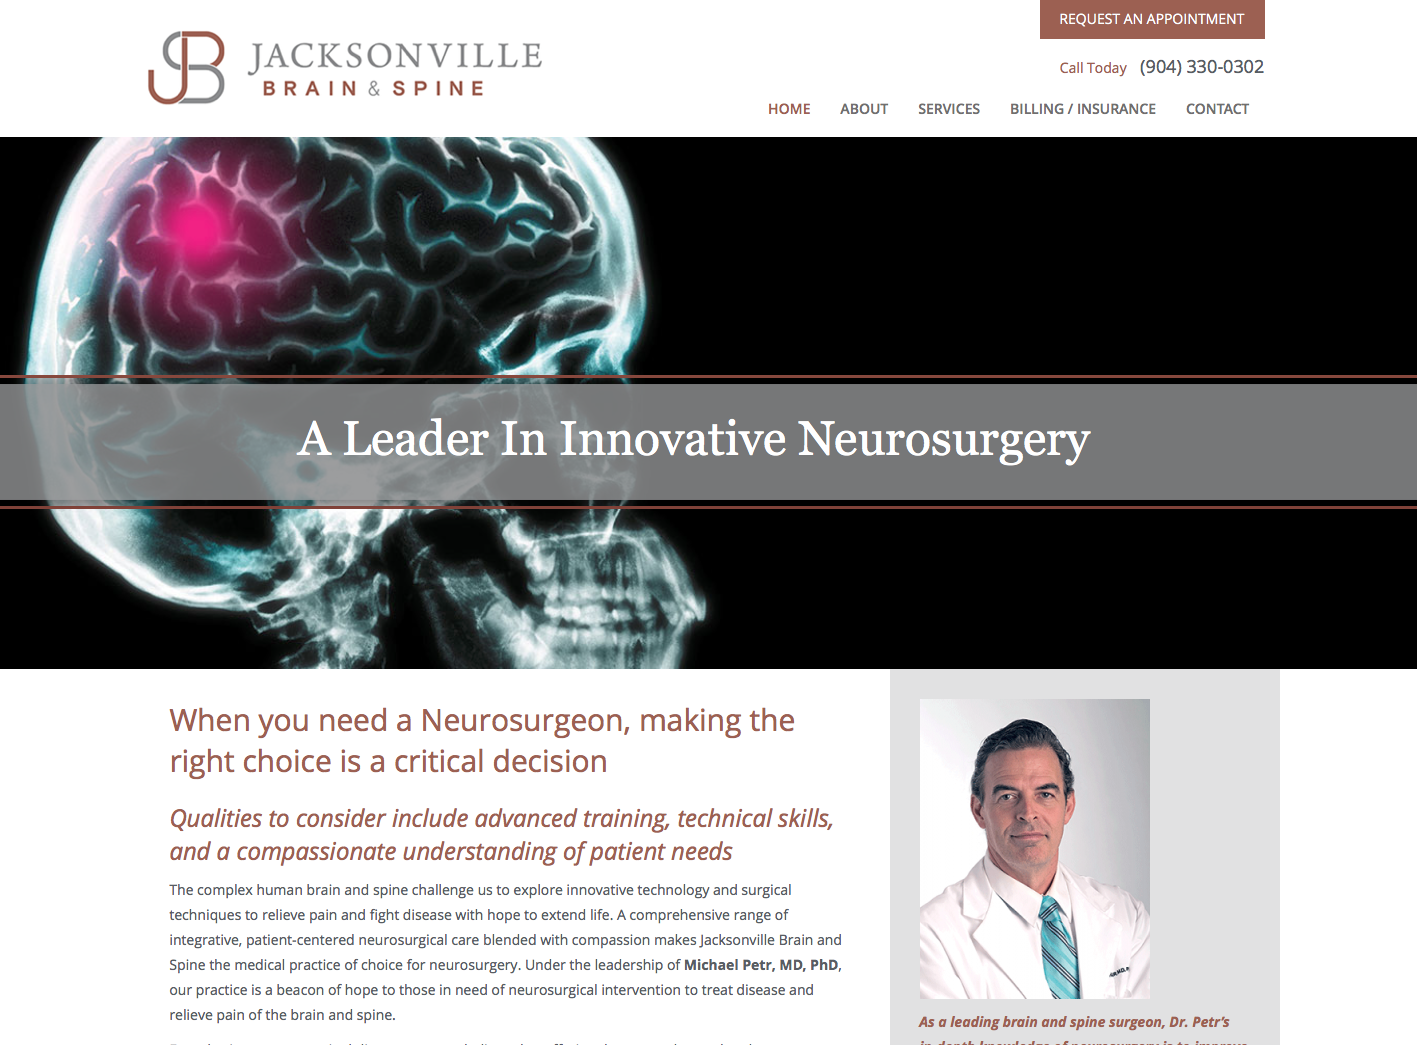 Jacksonville Brain and Spine